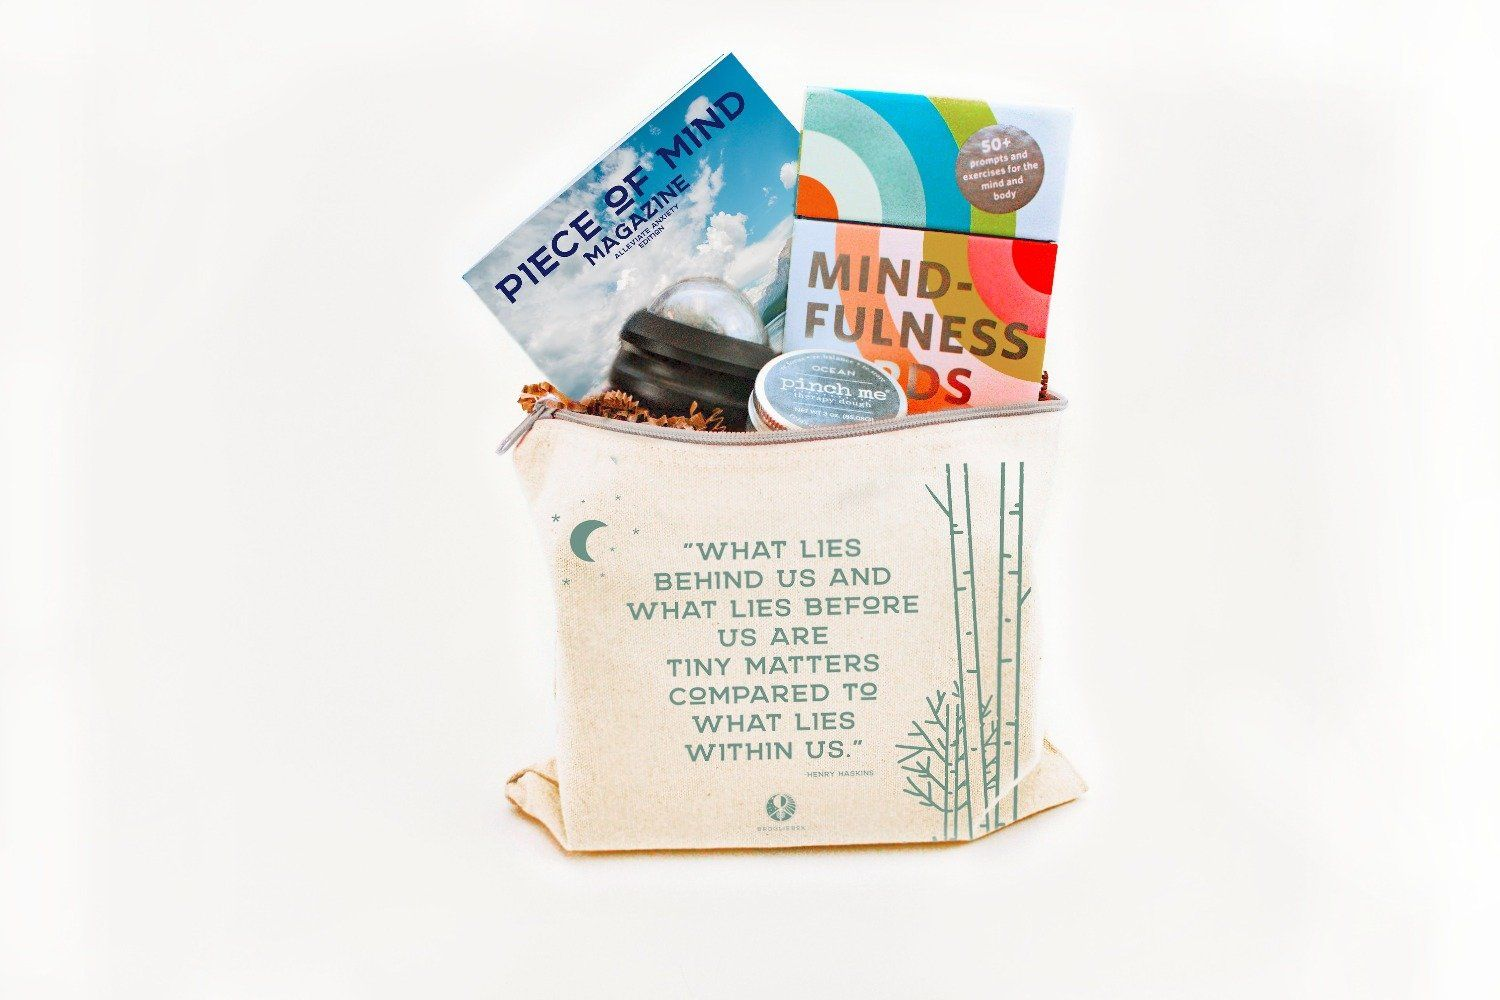 Feeling anxious or know someone who might be struggling? This kit was designed to be taken anywhere, for relief on the go. It comes packed in its own canvas bag with a reminder that what matters most is within. Contents BroglieBox™ Canvas Travel Bag Pinch Me® Therapy Dough Massage Roller Ball 50+ Prompted Mindfulness Cards Piece of Mind Magazine™ - Alleviate Anxiety Edition More If you are looking for more anxiety resources, be sure to check out our BroglieBlog for more free articles and pieces.